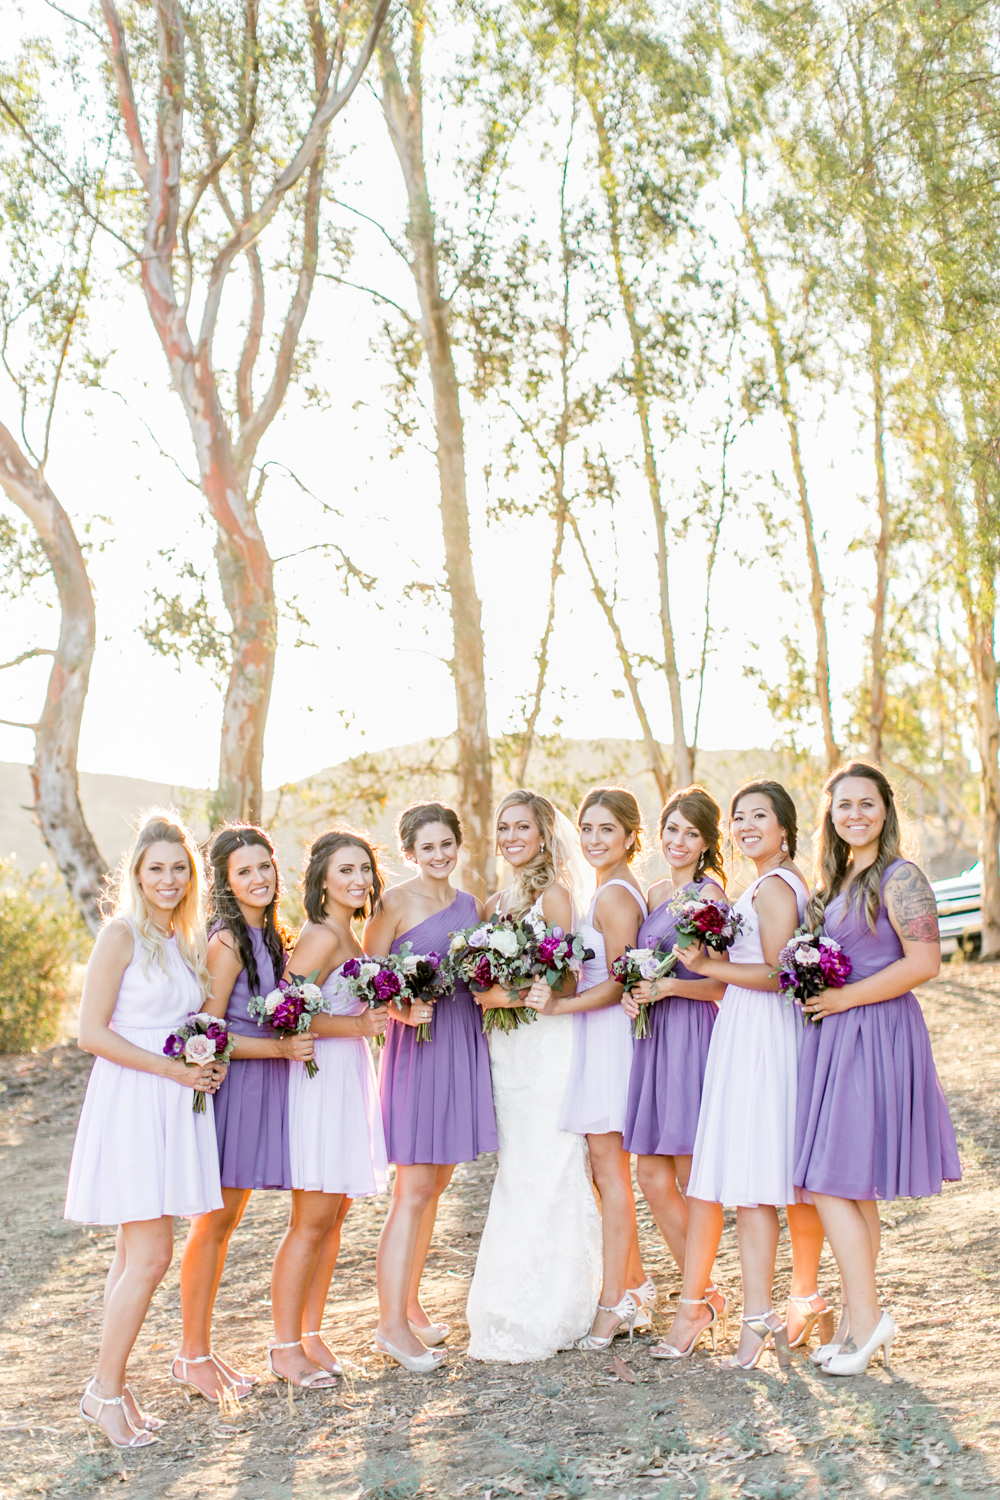 Wedding in Murrieta, Ca